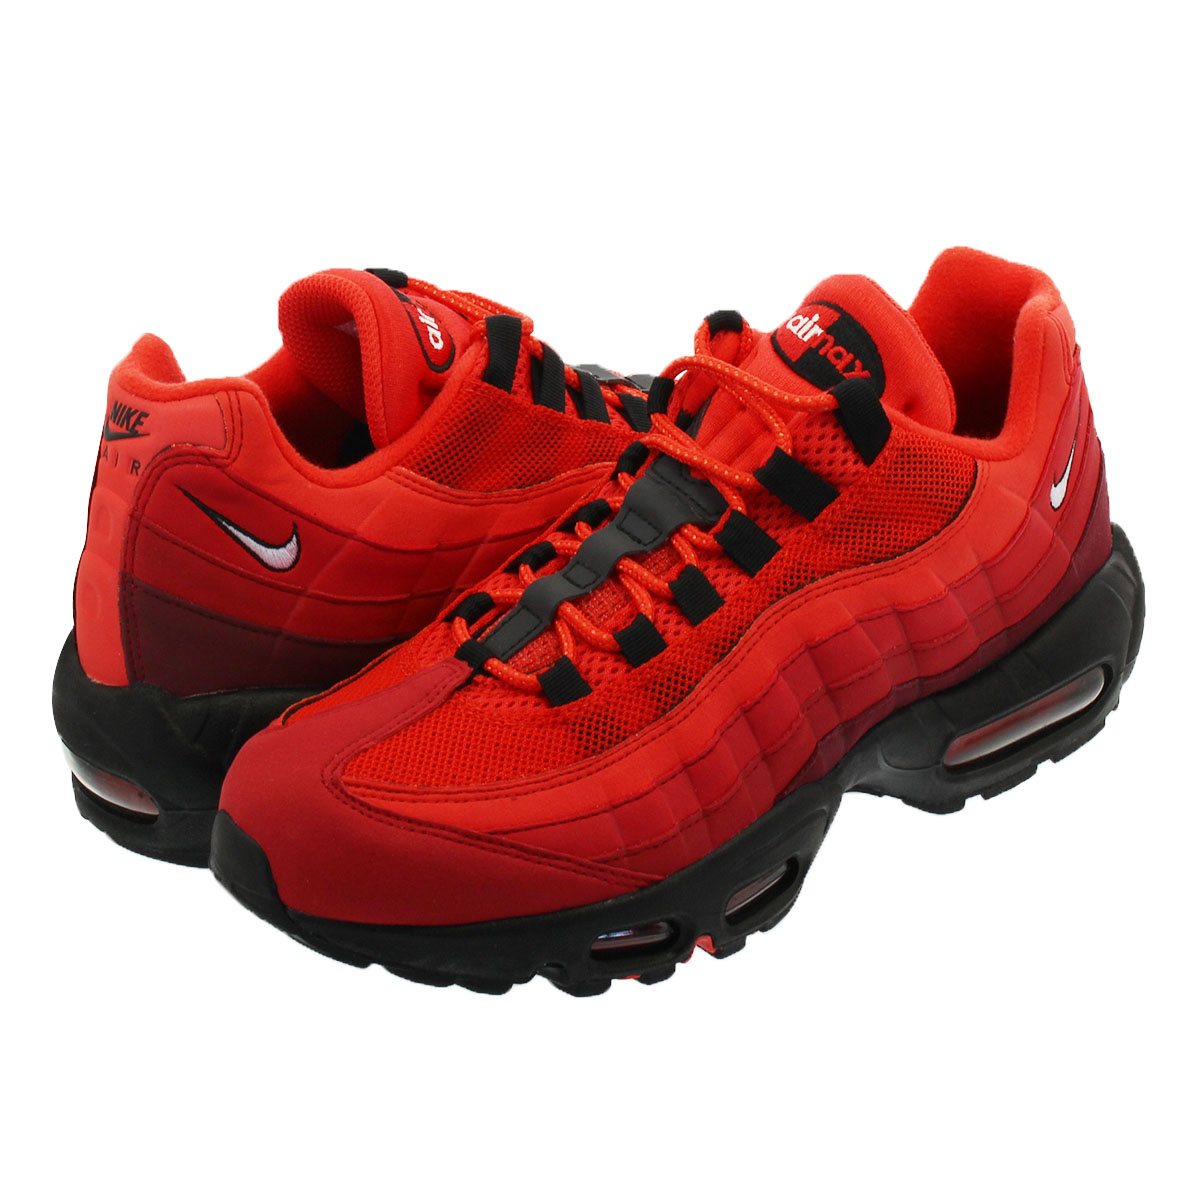 lowest price 73040 3a2e5 NIKE AIR MAX 95 OG Kie Ney AMAX 95 OG HABANERO RED/WHITE/UNIVERSITY RED/GYM  RED/TEAM RED/BLACK at2865-600